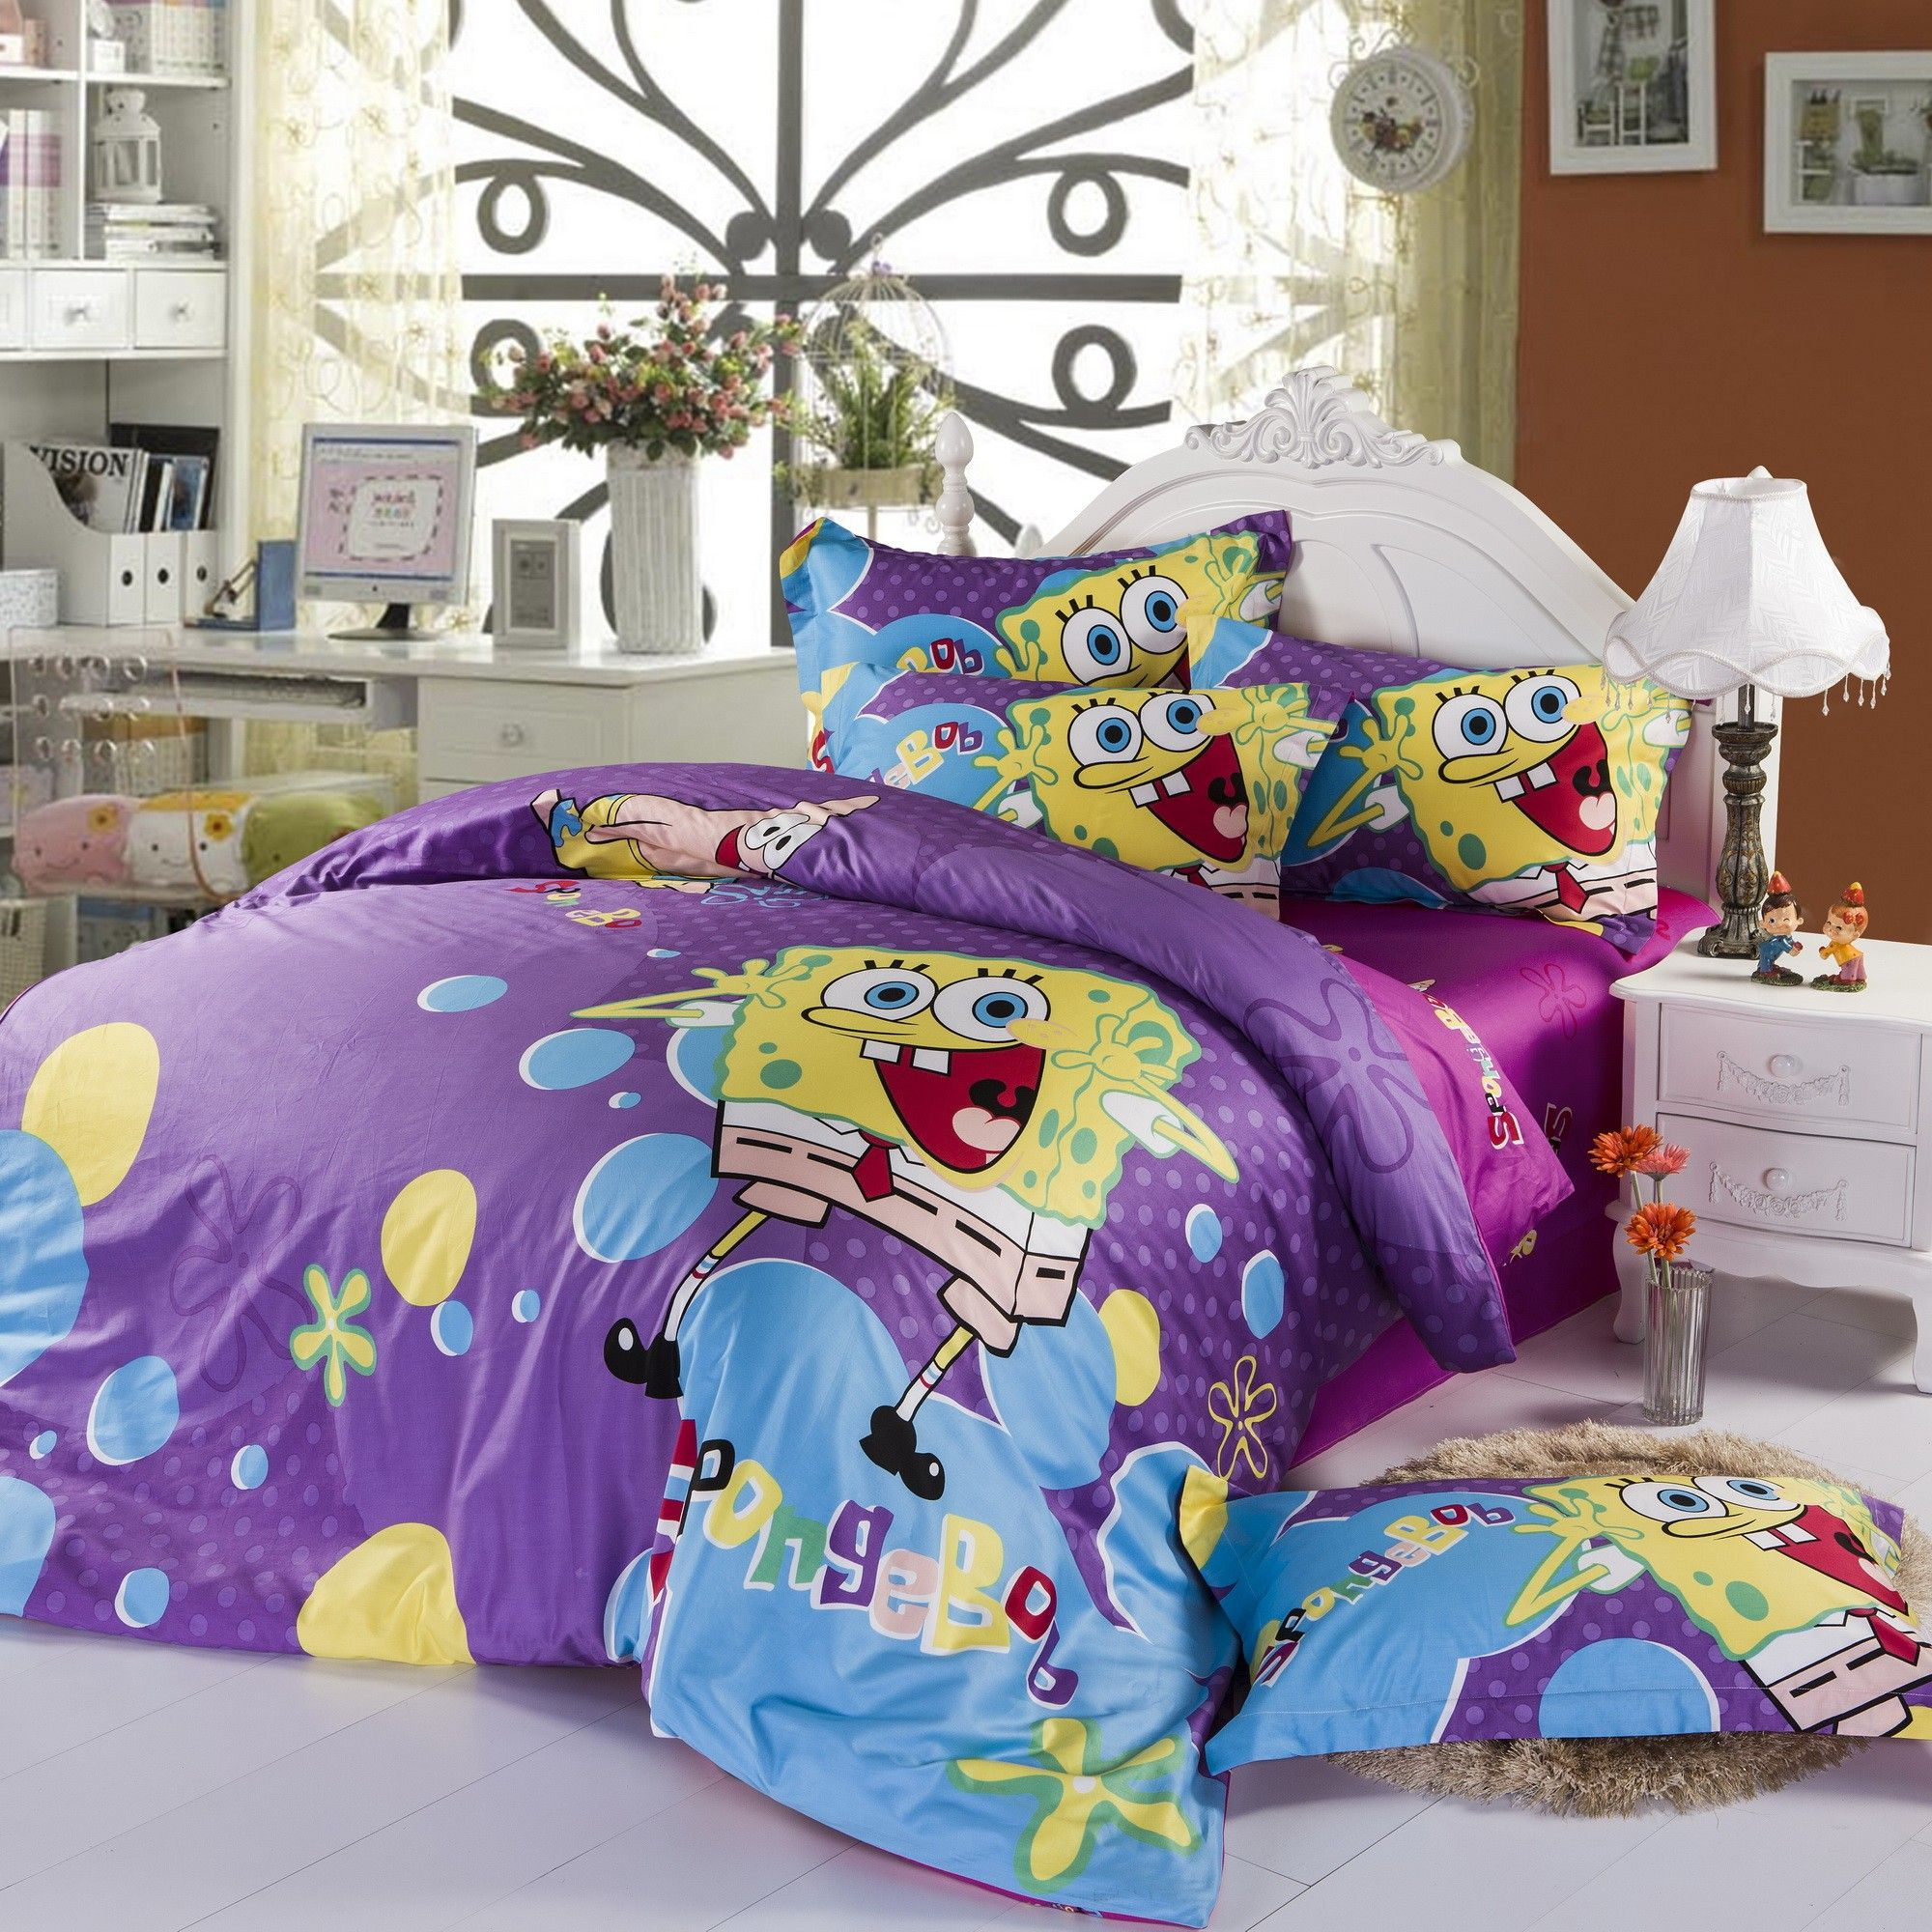 Purple Spongebob Queen Size Cover Bedding Much In Demand By The Girls